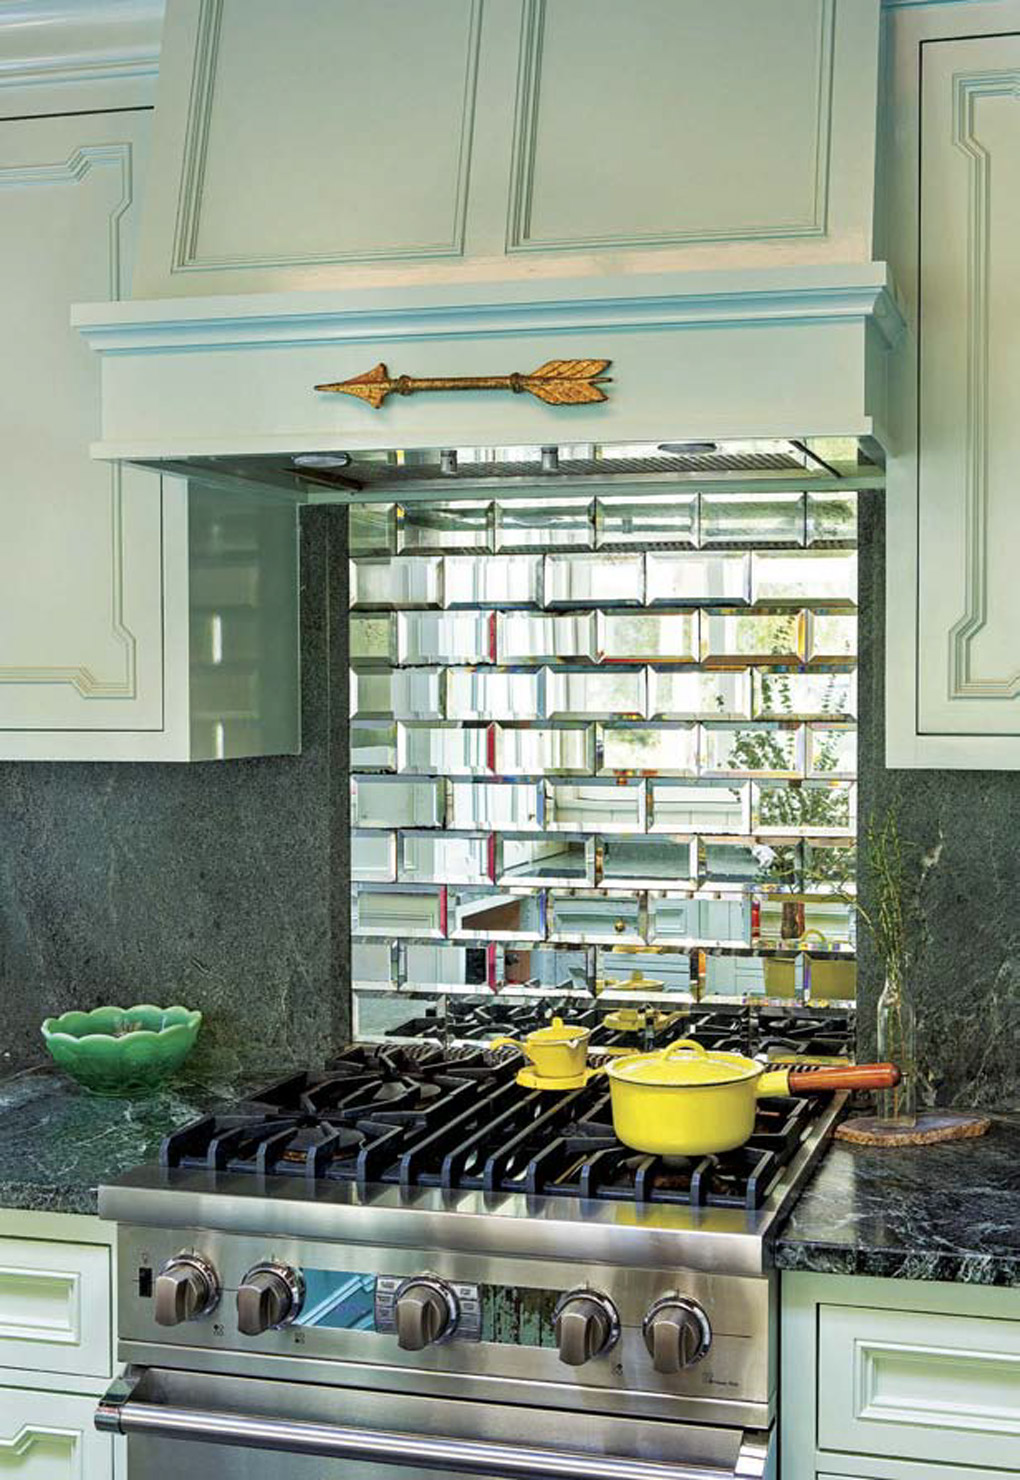 Small stainless steel range with a mirrored subway tile backsplash surrounded by light aqua colored cabinets.